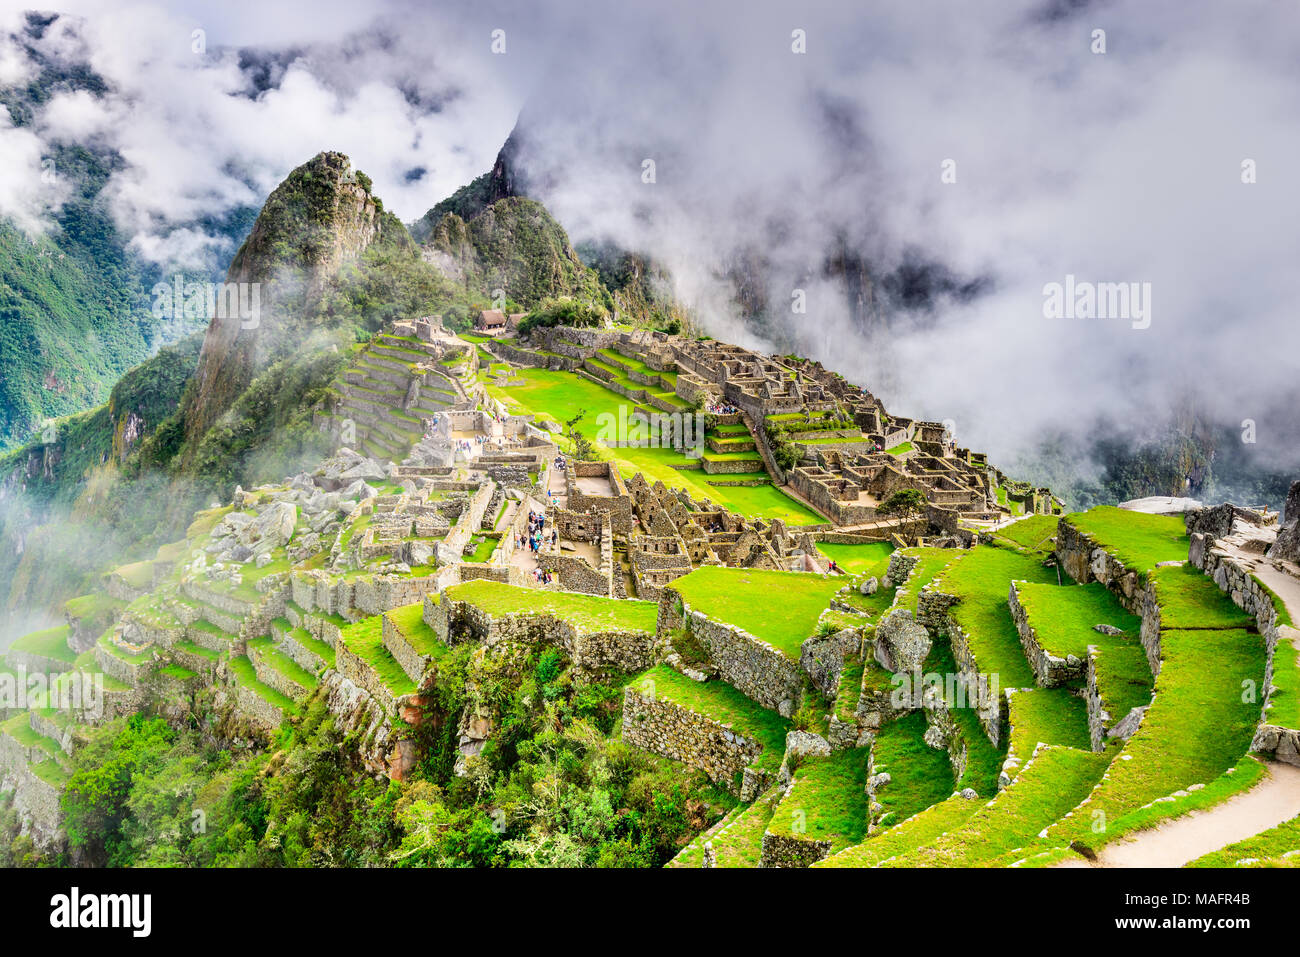 Machu Picchu in Peru - Ruins of Inca Empire city and Huaynapicchu Mountain in Sacred Valley, Cusco, South America. - Stock Image